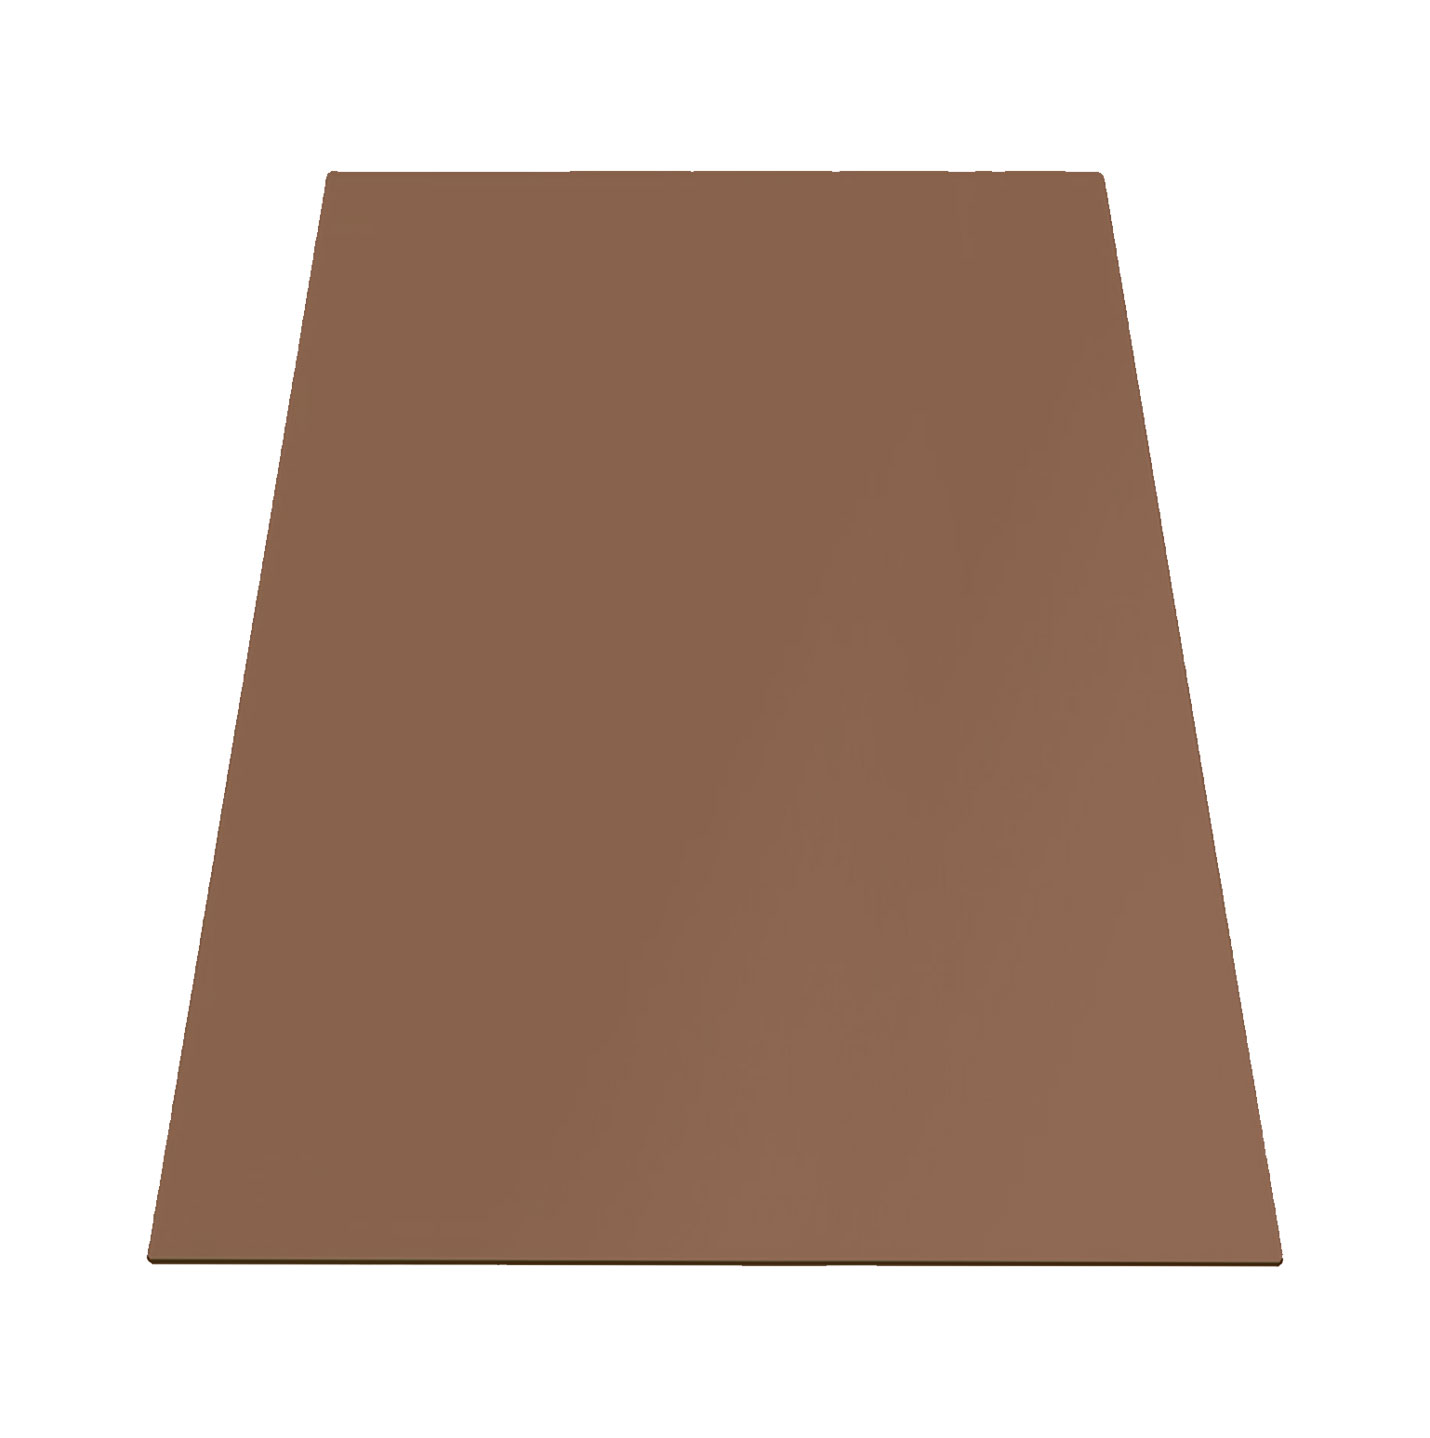 Buy 10 mm Rectangle Table Top Tempered Bronze Tinted Glass - Flat polished edges & Eased corner